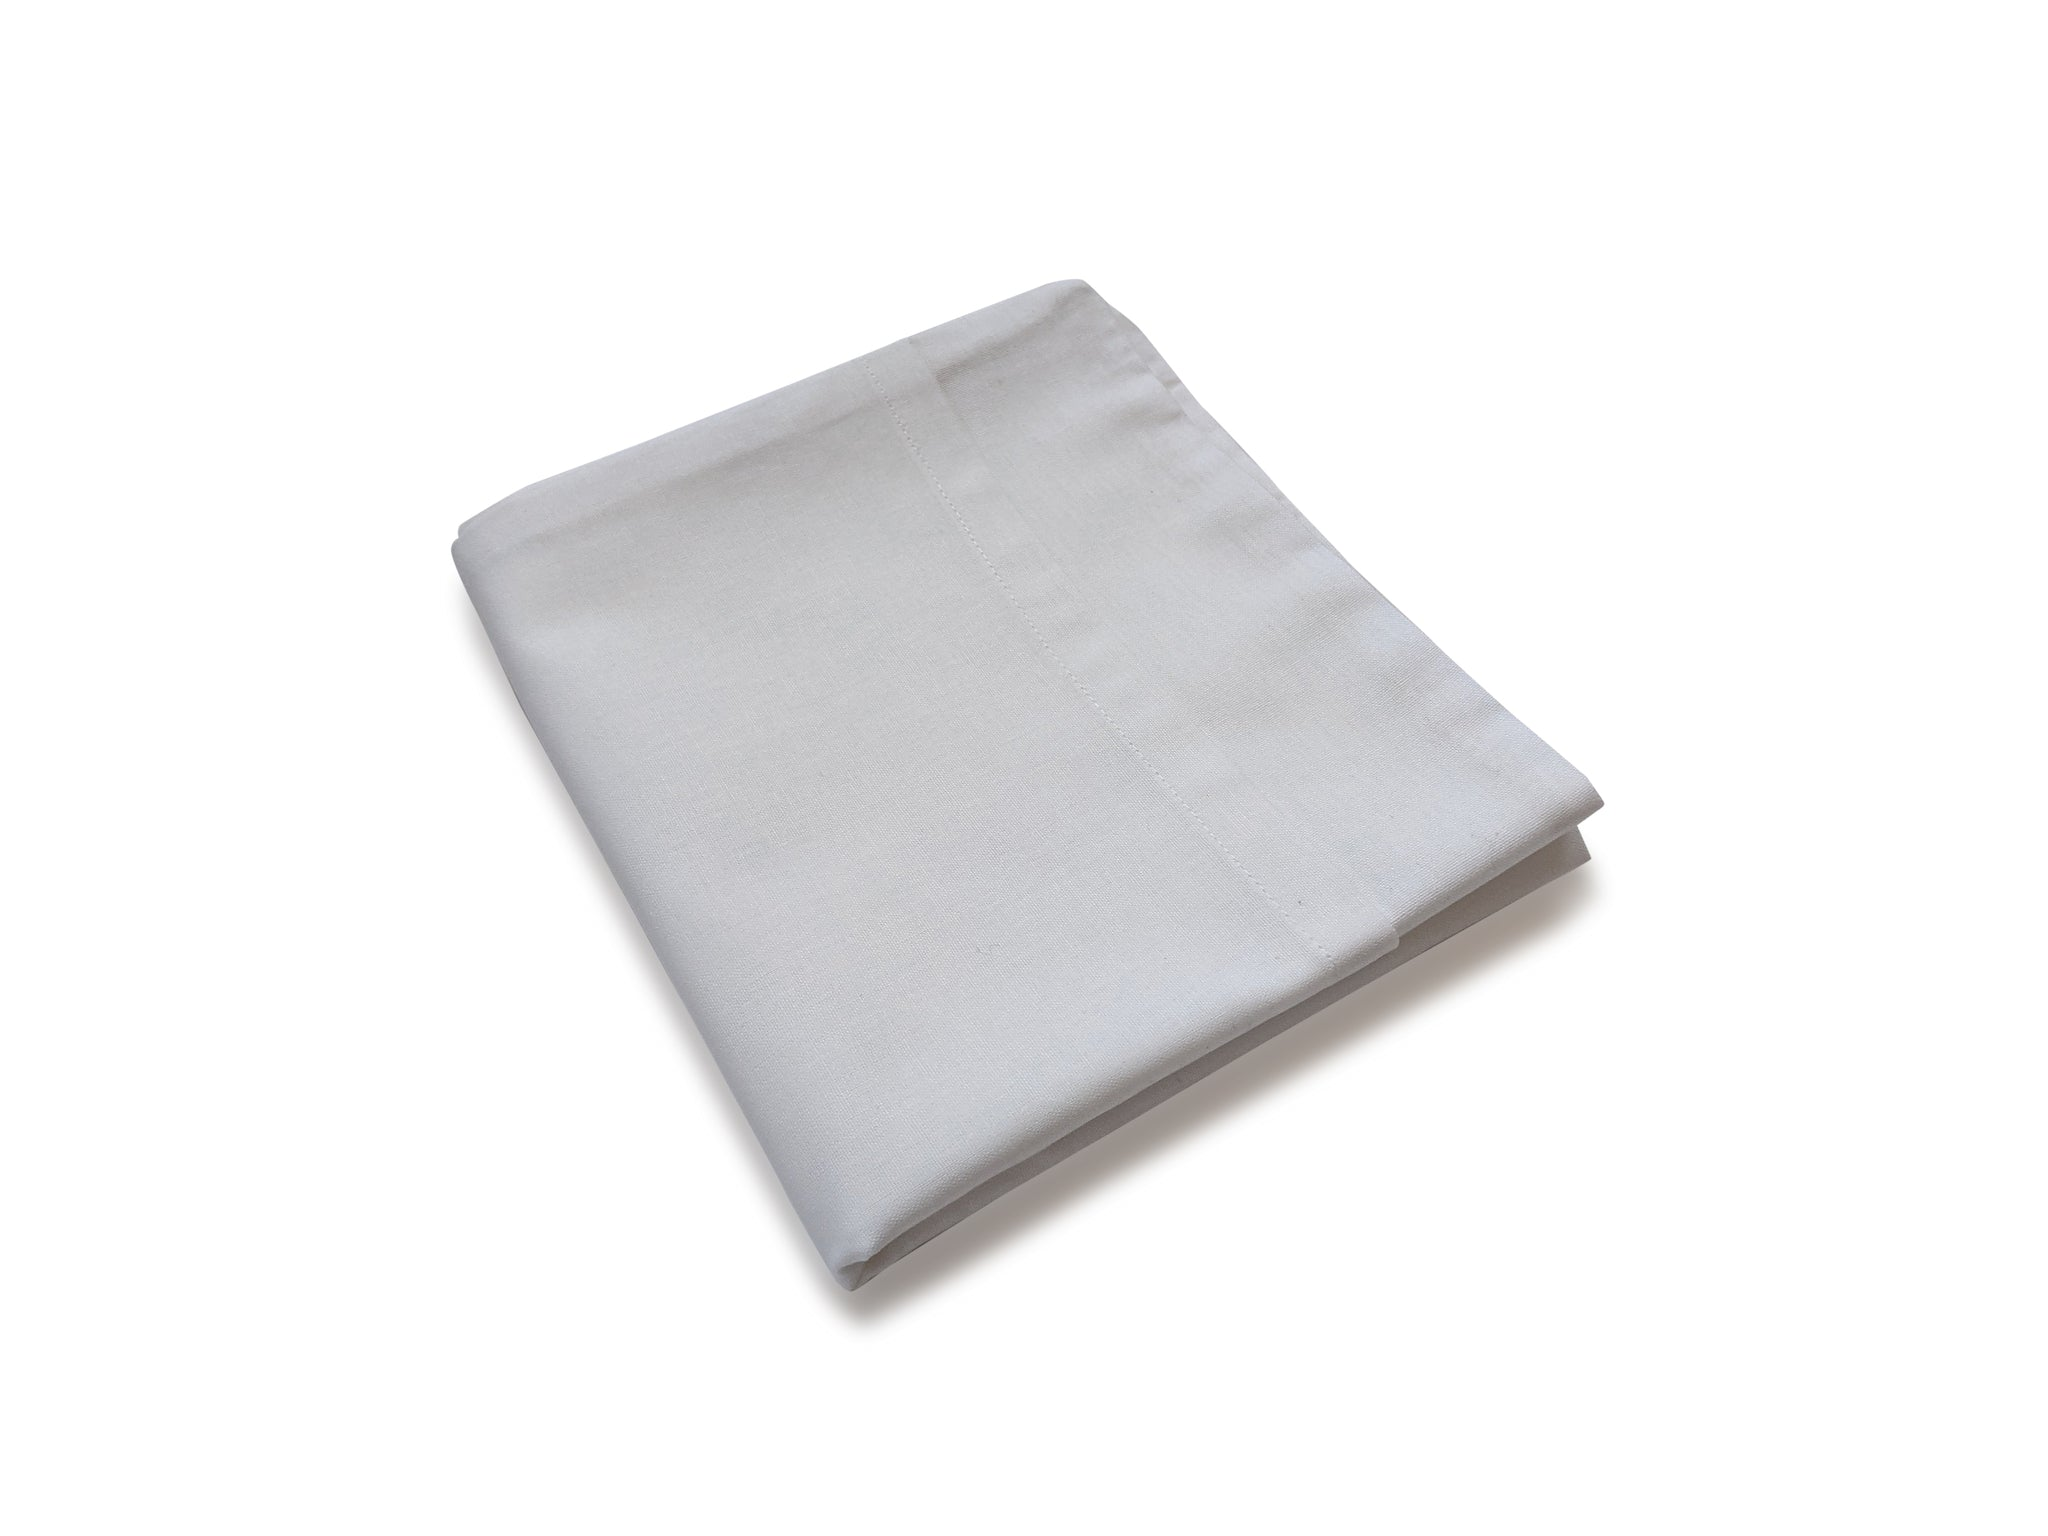 ComfySleep - 100% Organic Cotton Pillowcase